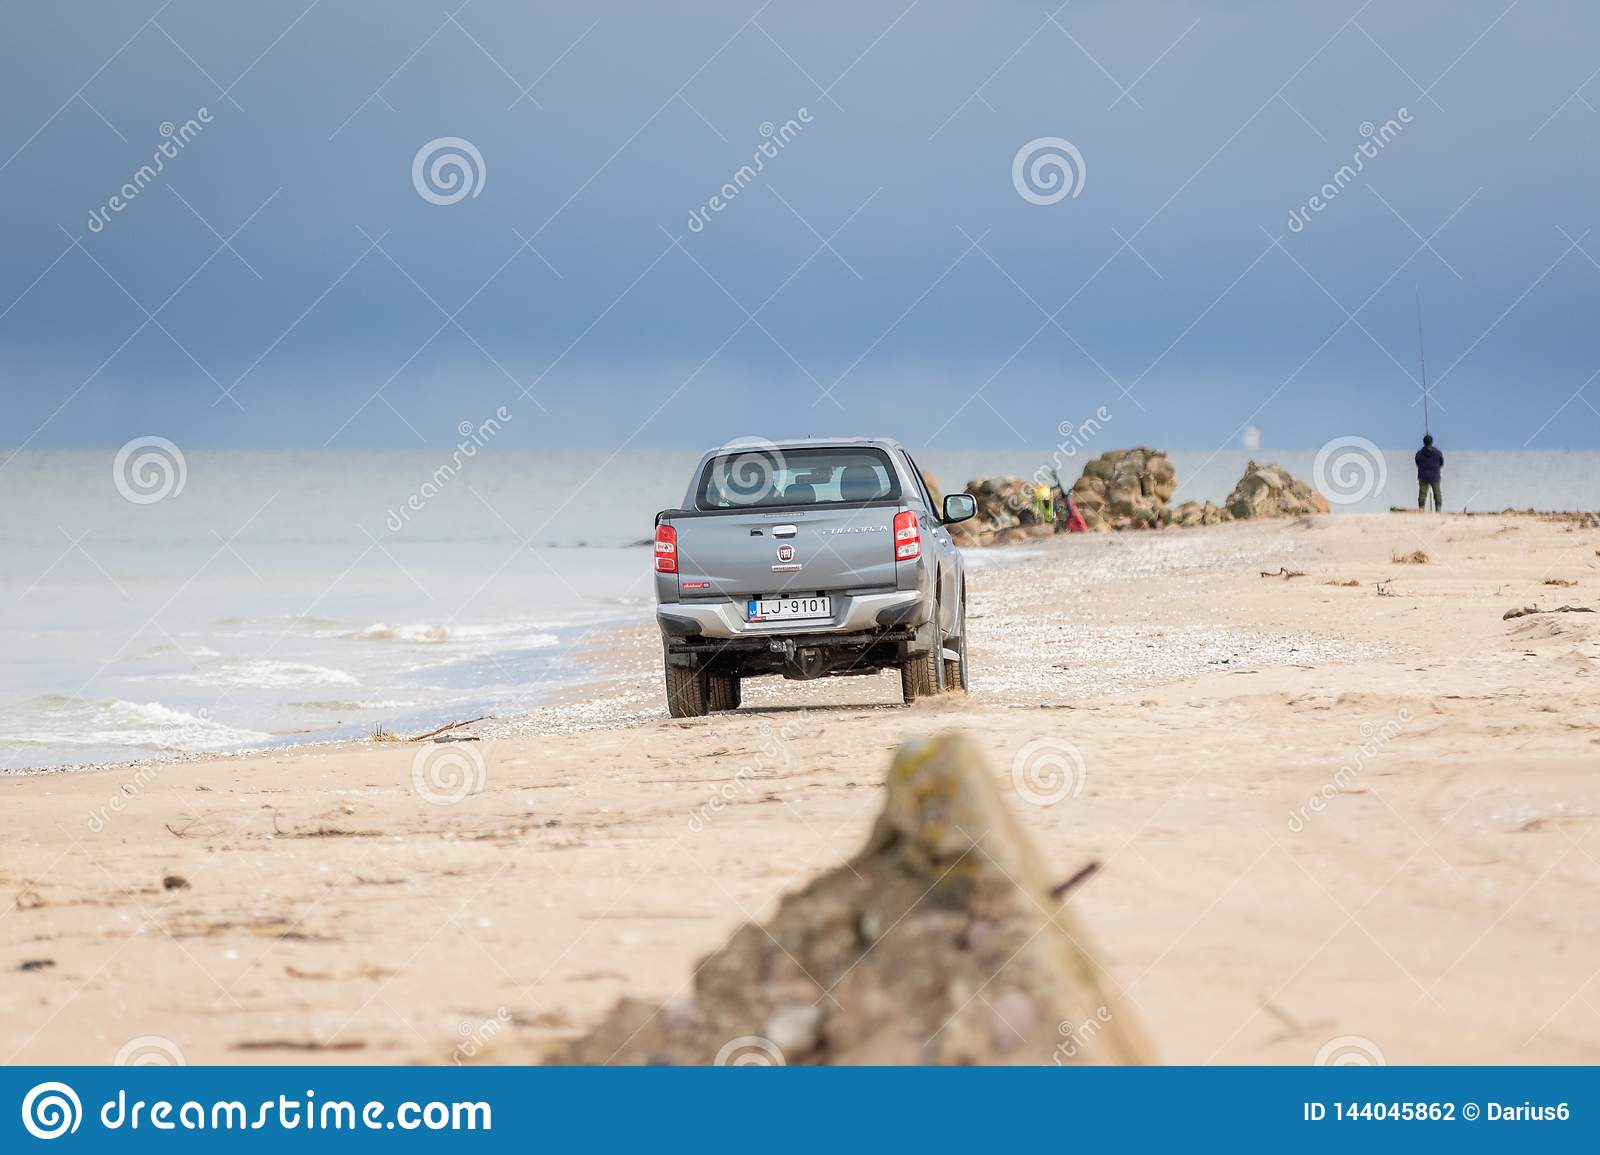 KOLKA, LATVIA - 26 OCTOBER 2018: Fiat Fullback pick up truck driving in the beach